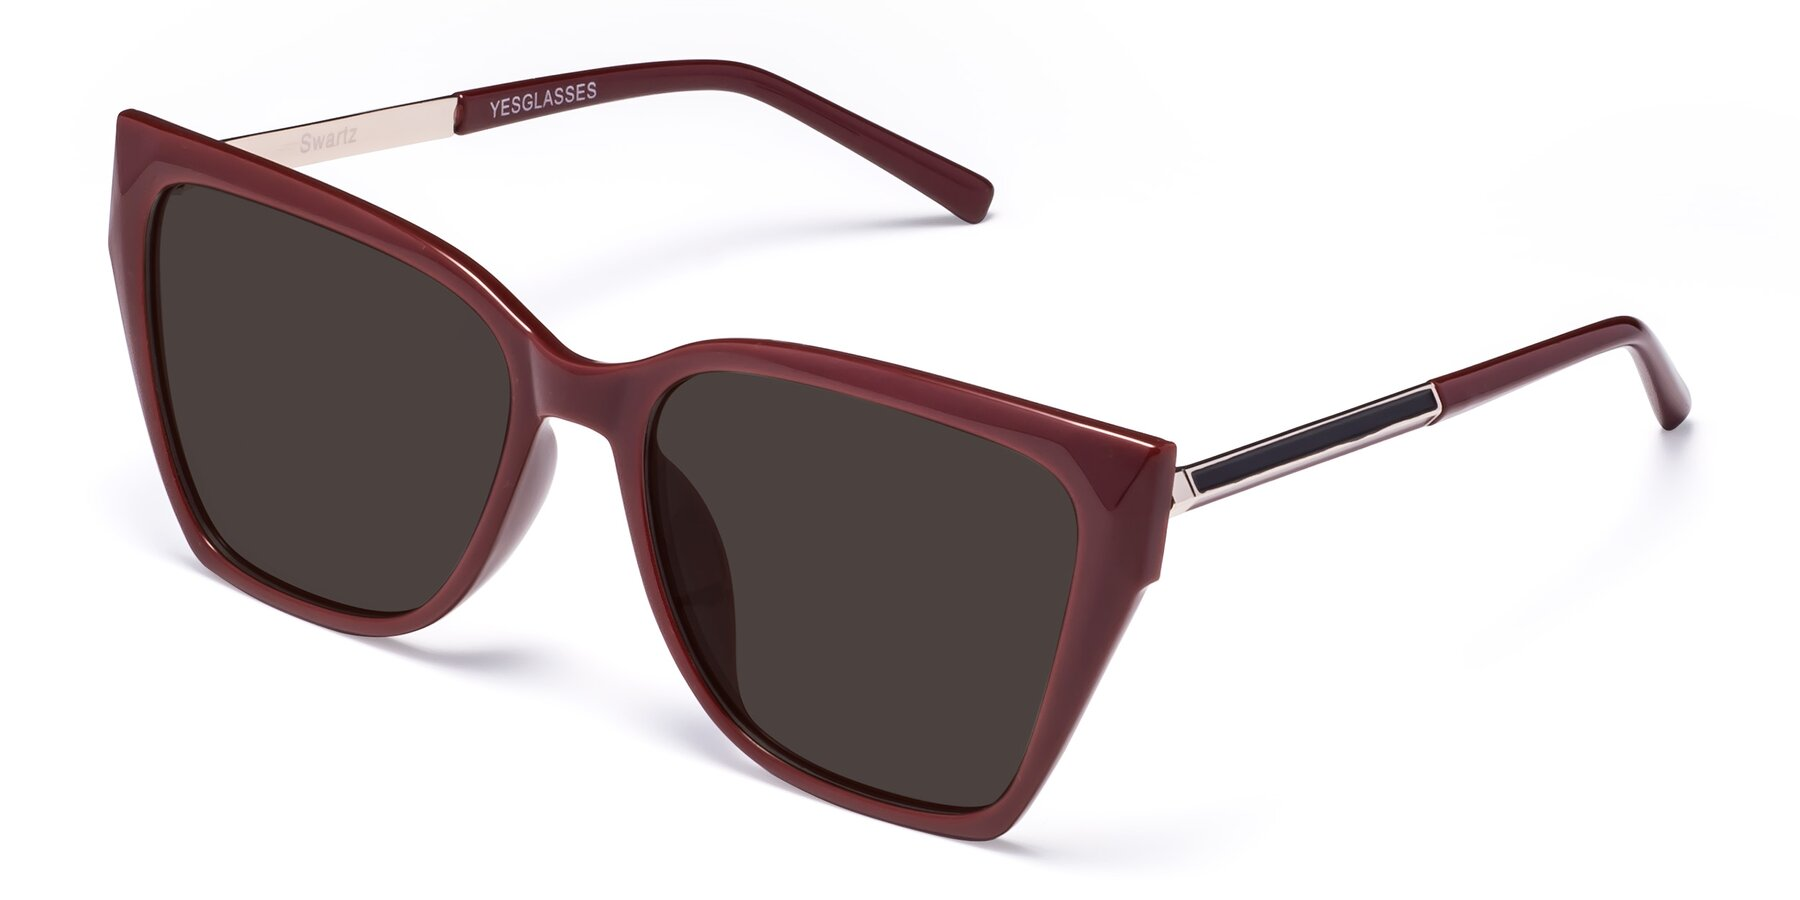 Angle of Swartz in Wine with Gray Tinted Lenses